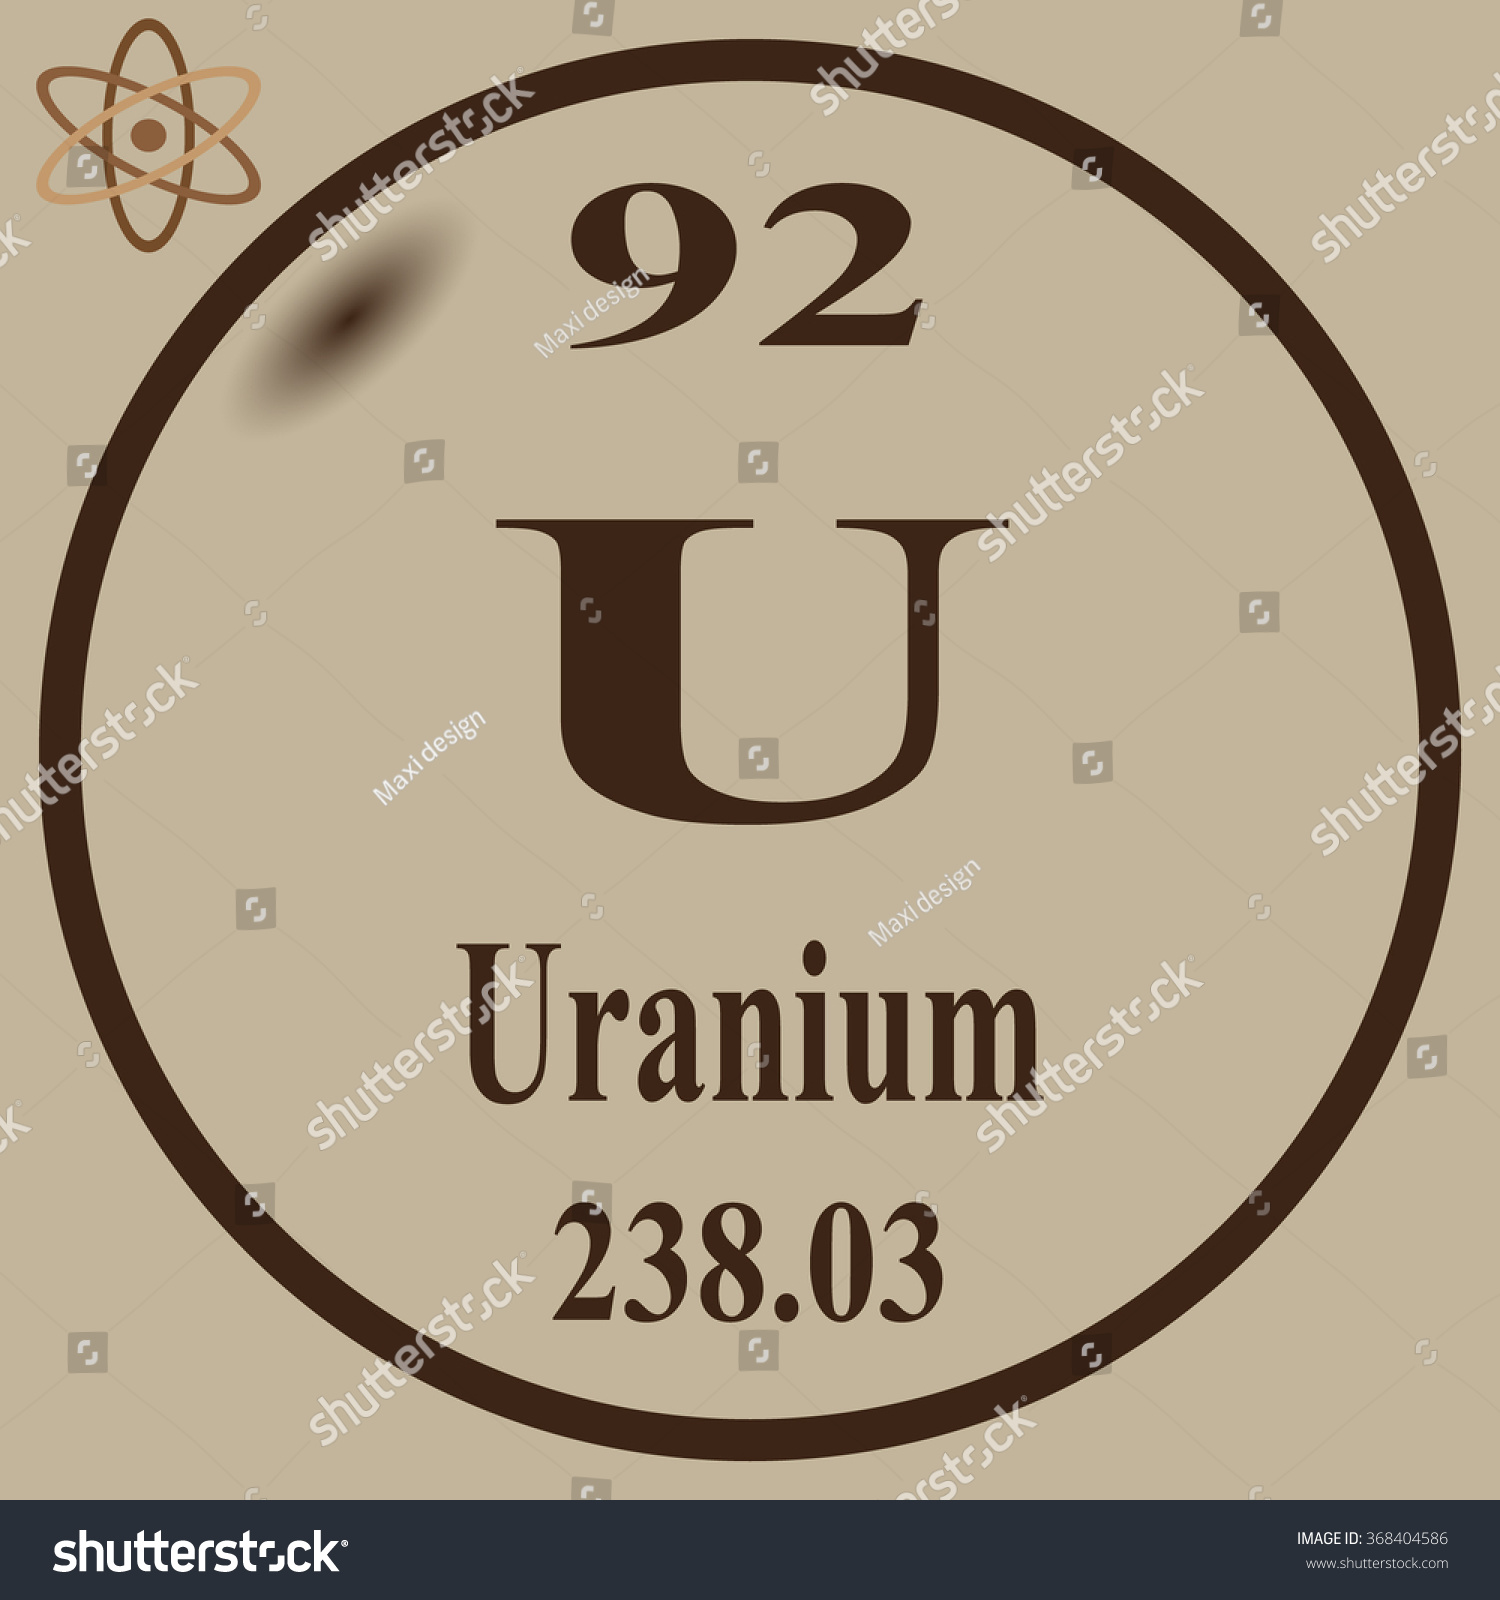 Periodic table elements uranium stock vector 368404586 shutterstock periodic table of elements uranium gamestrikefo Image collections